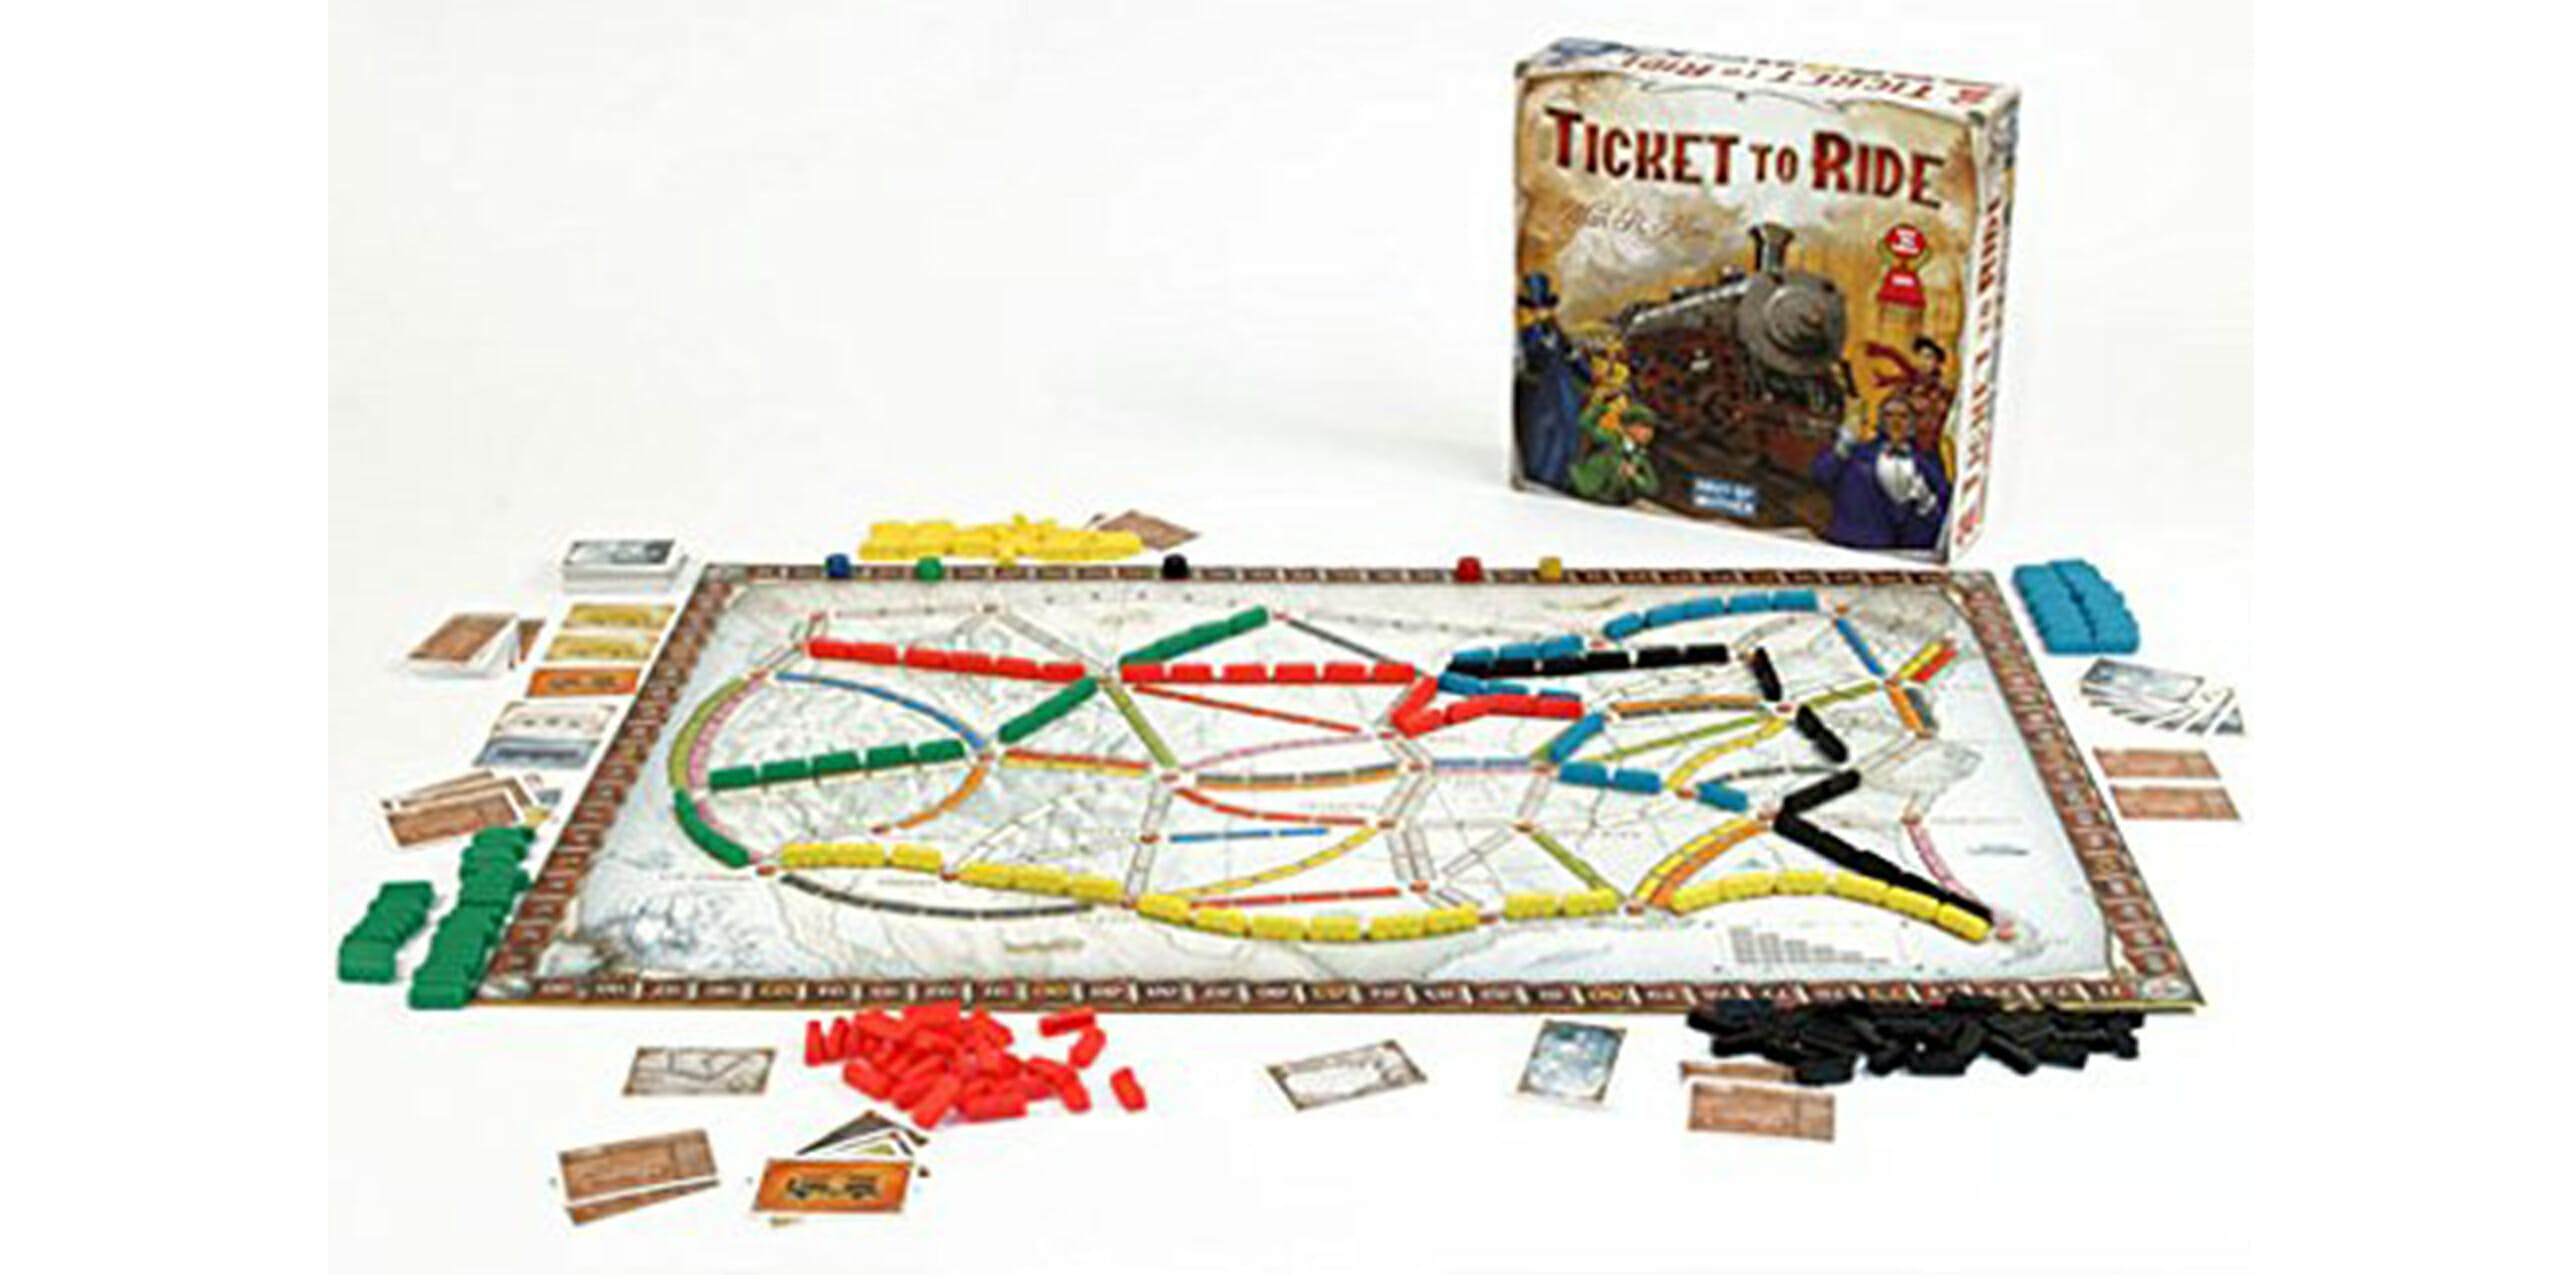 2 player board games